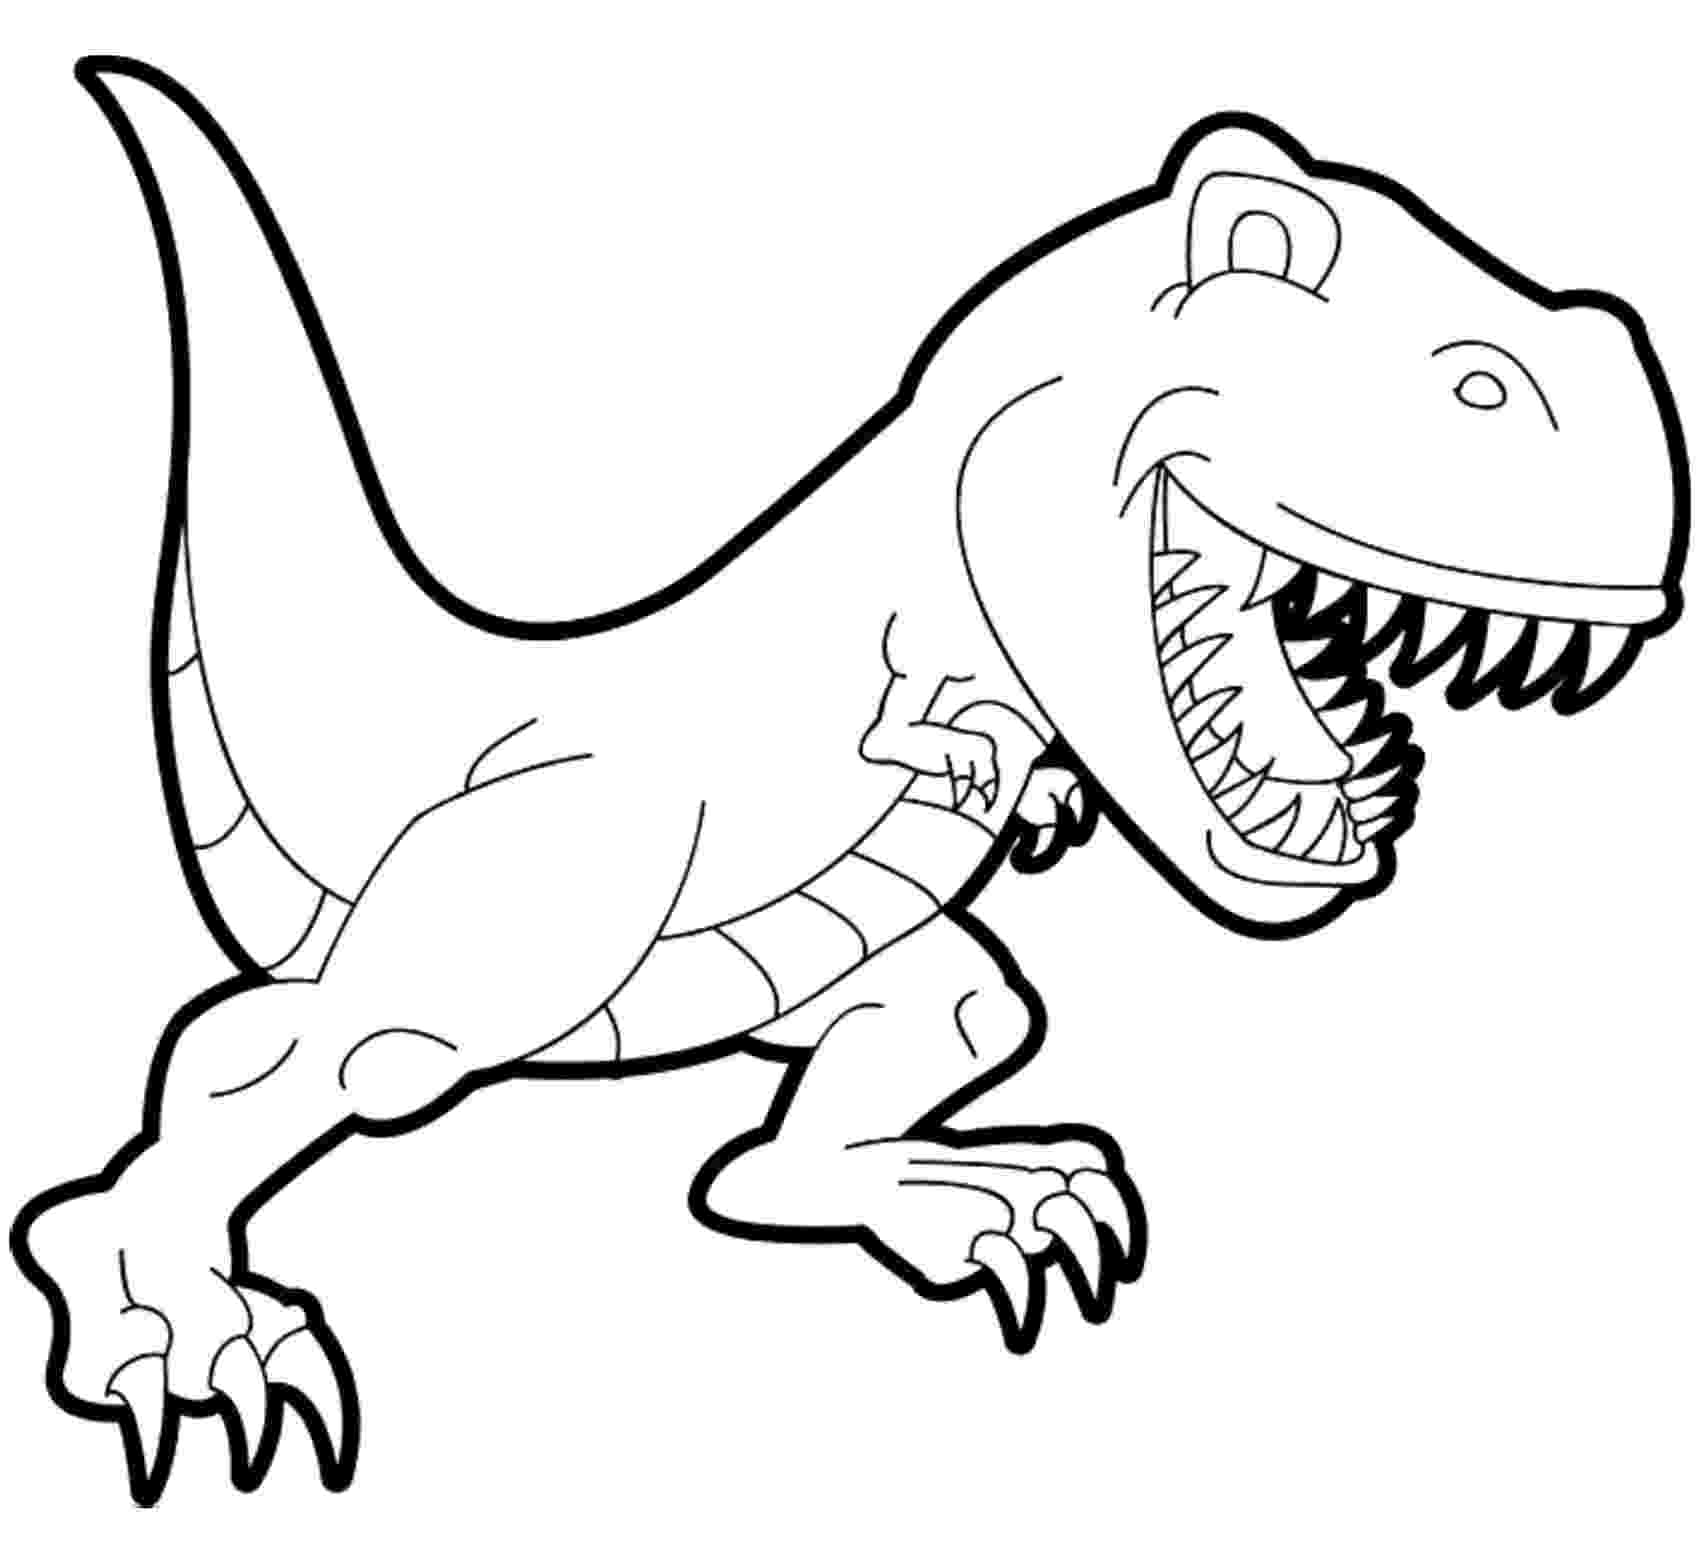 print dinosaur pictures dinosaurs free to color for kids tyrannosaur rex cartoon pictures print dinosaur